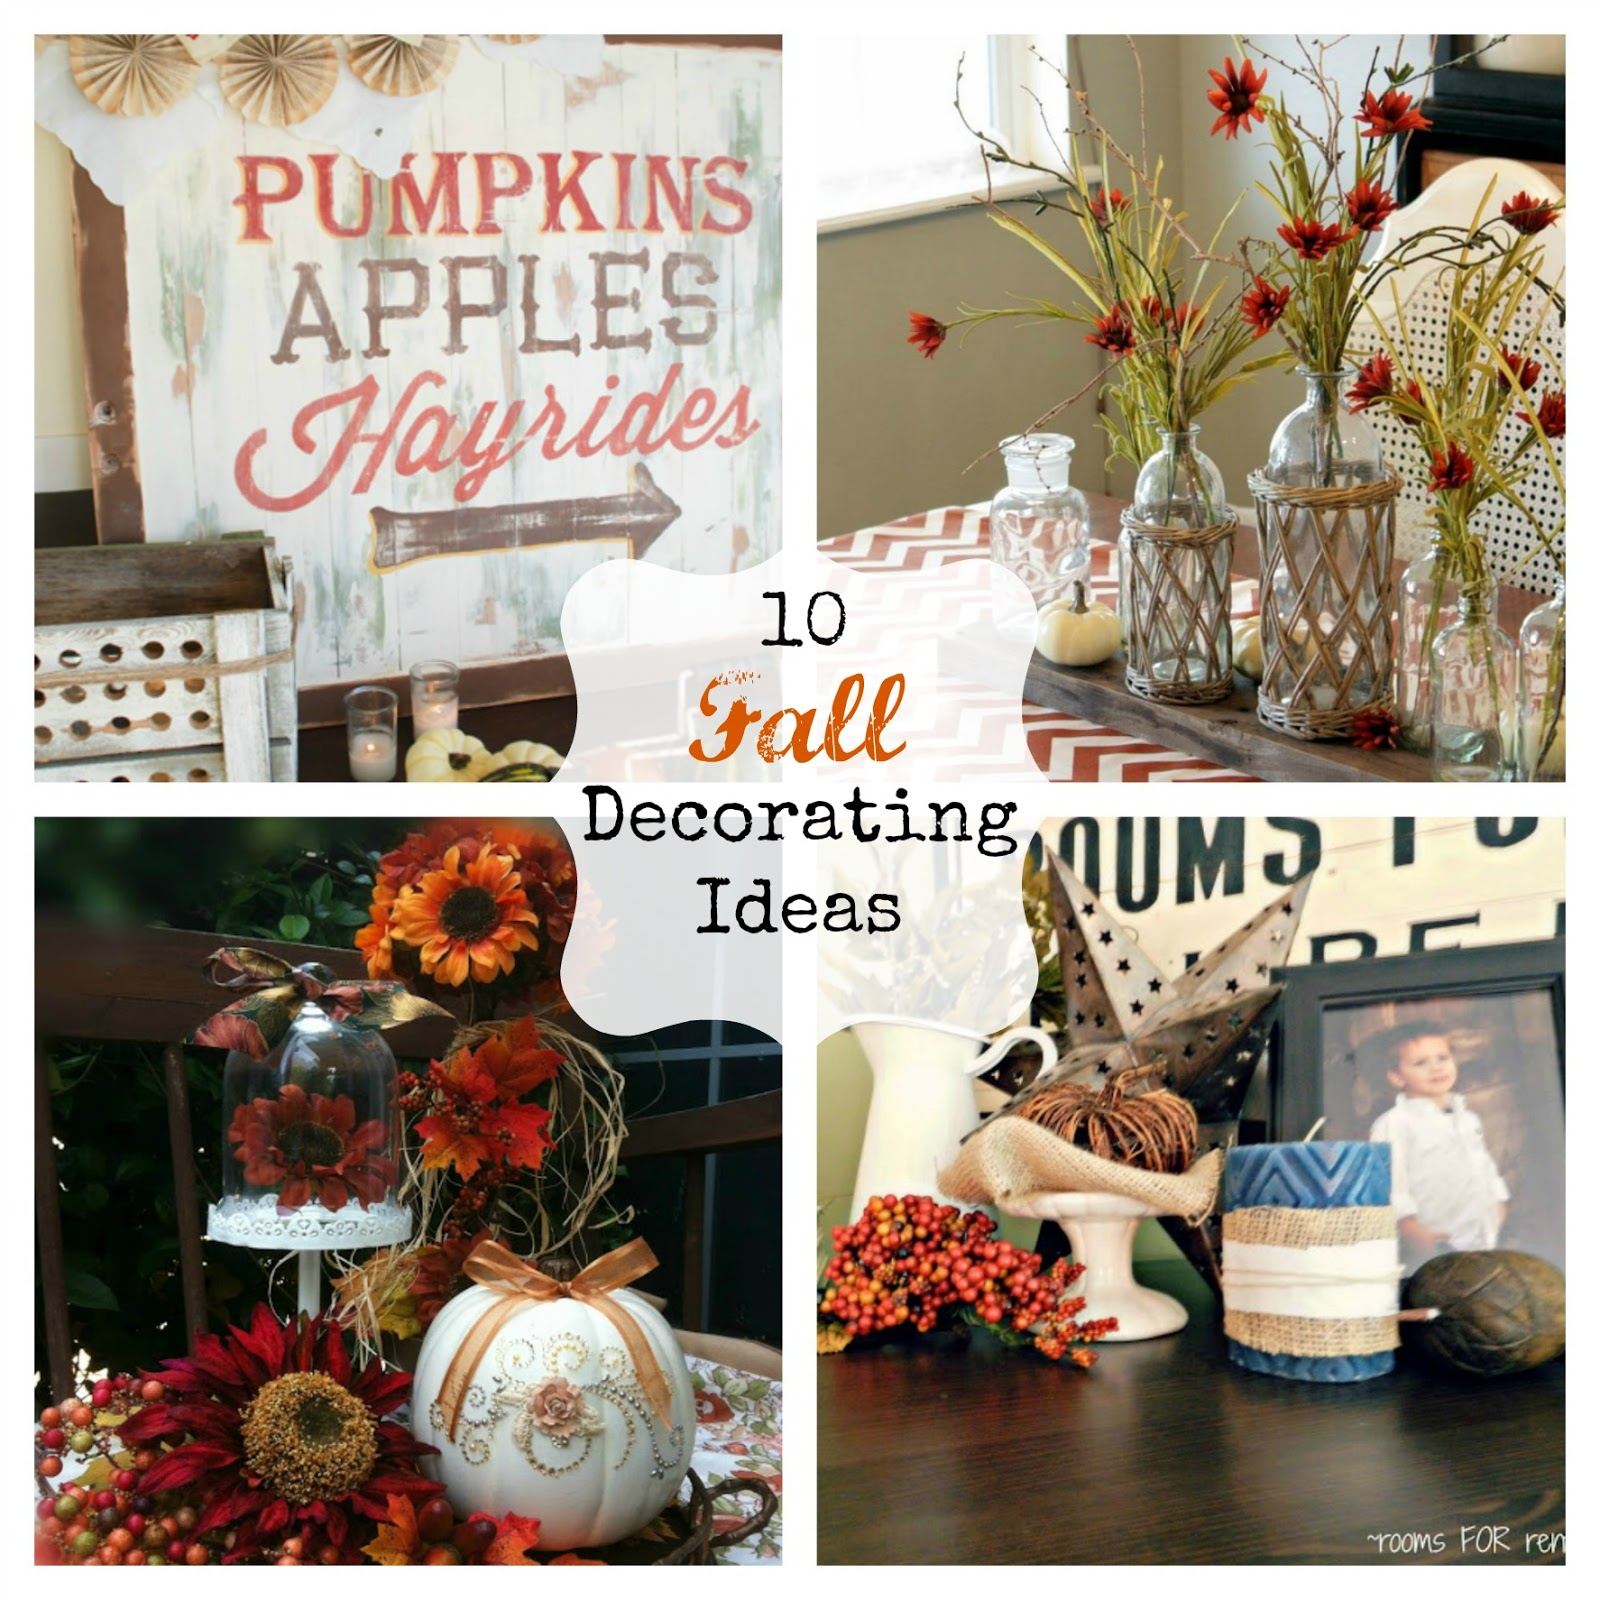 10 fall decorating ideas - Fun Home Decor Ideas